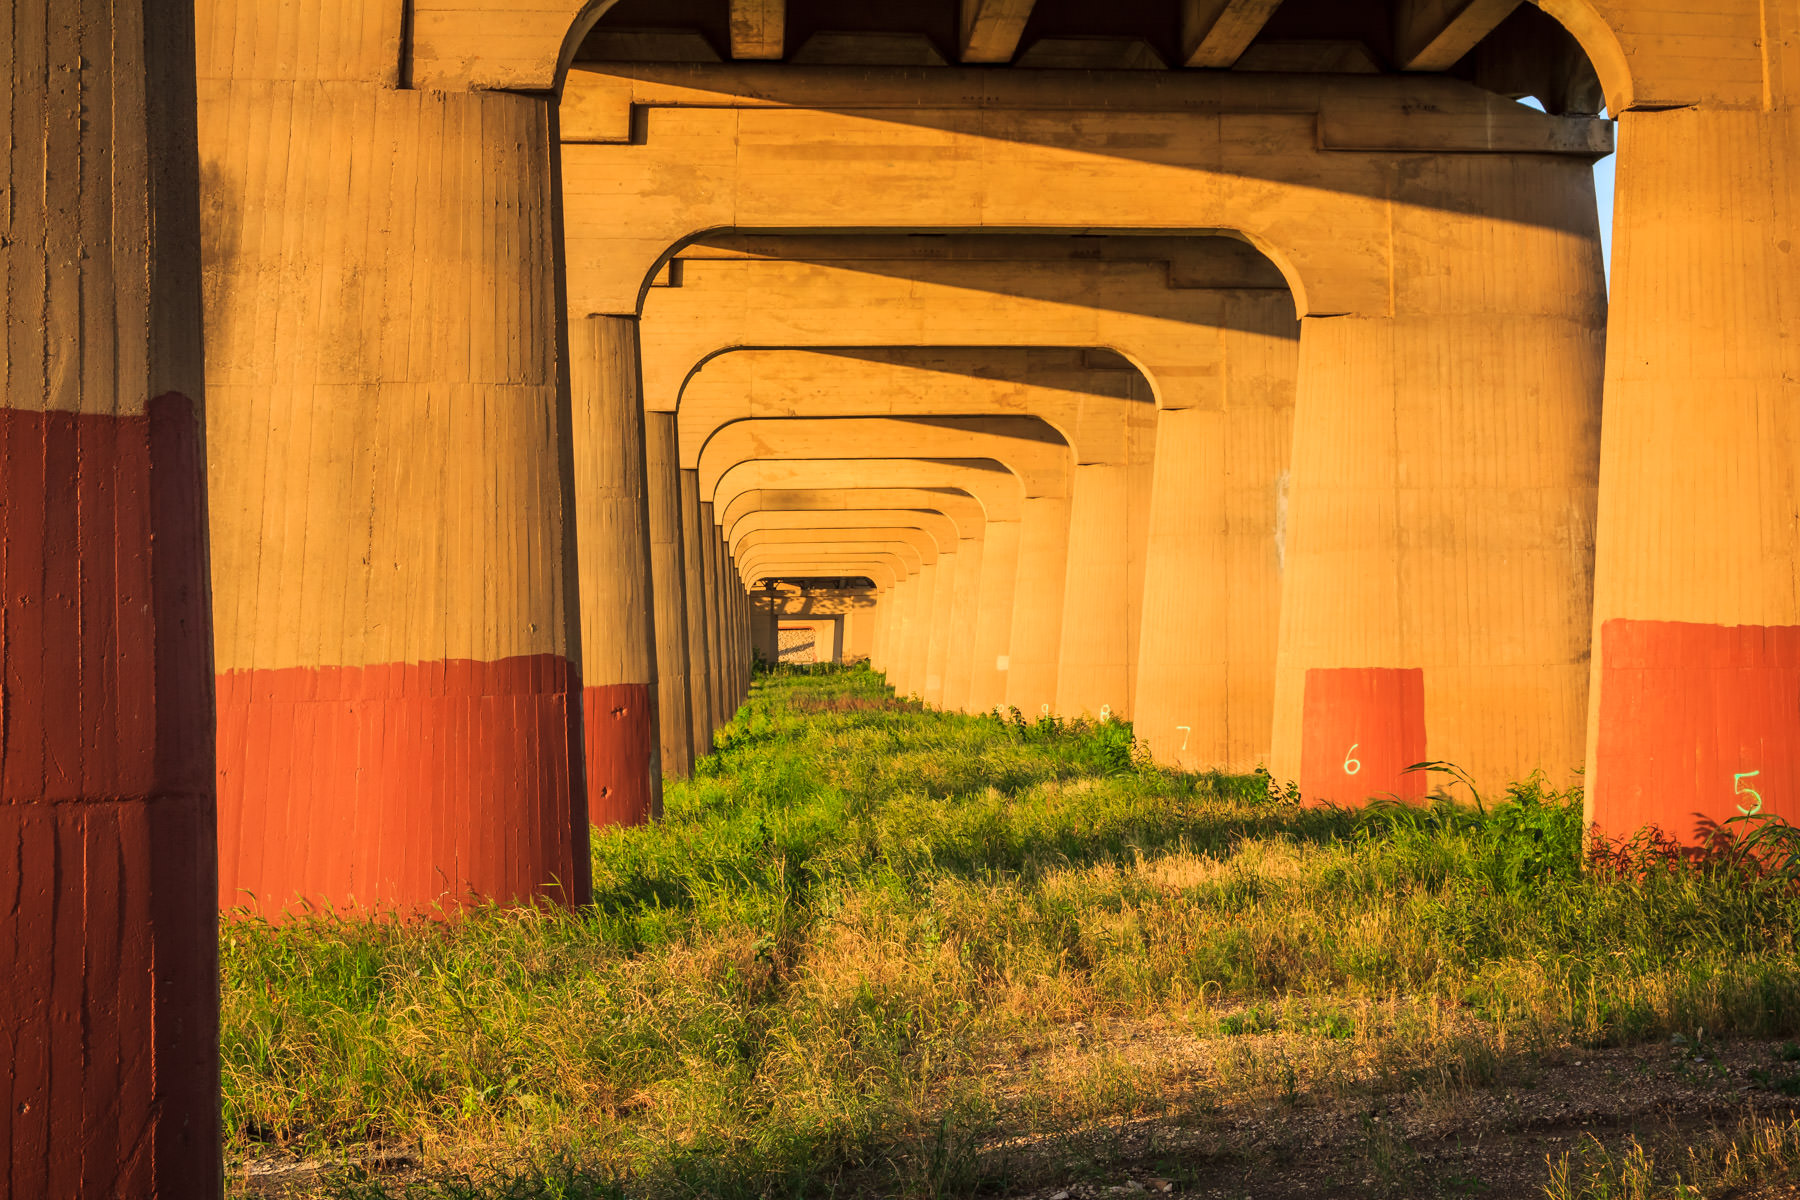 The setting sun illuminates the repeating pattern of Dallas' Continental Avenue Bridge's cast concrete support legs recedes into the distance.